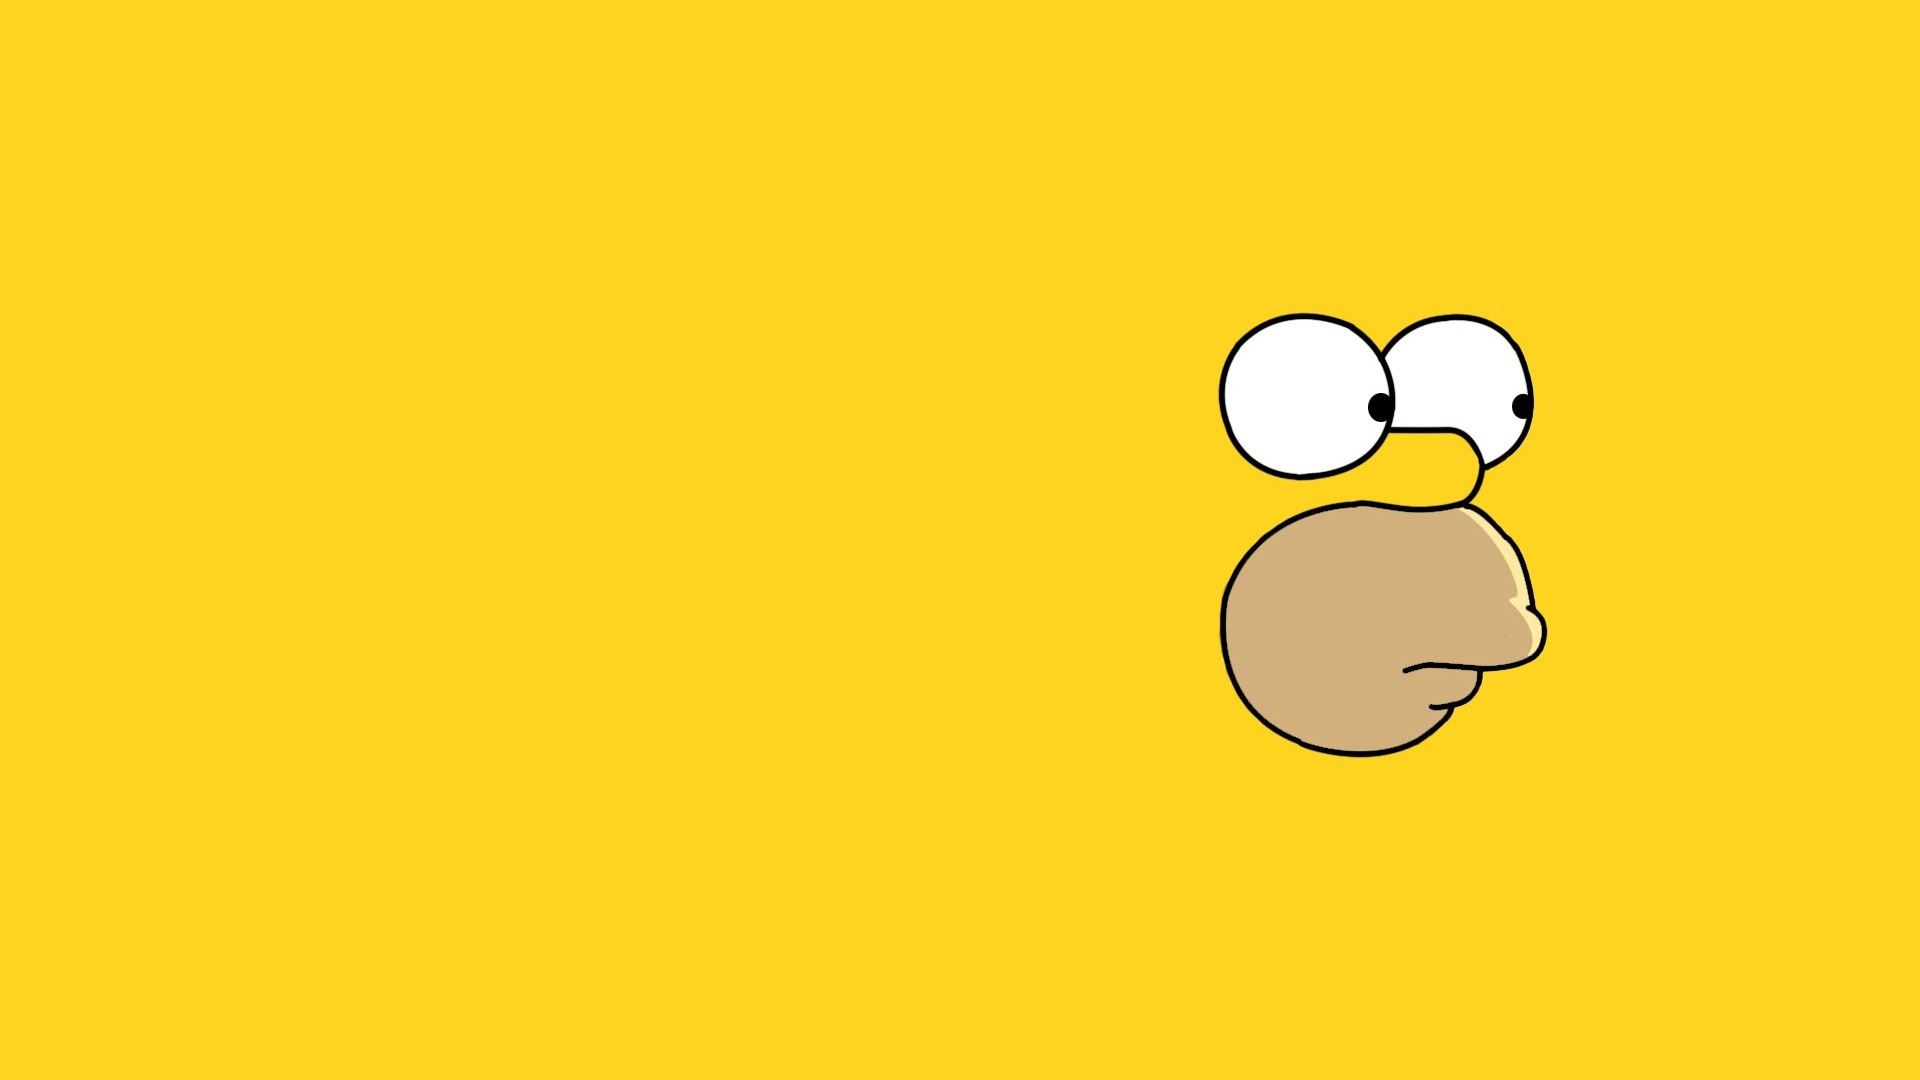 Free Download Homer Simpson Desktop Wallpaper Pelautscom 1920x1080